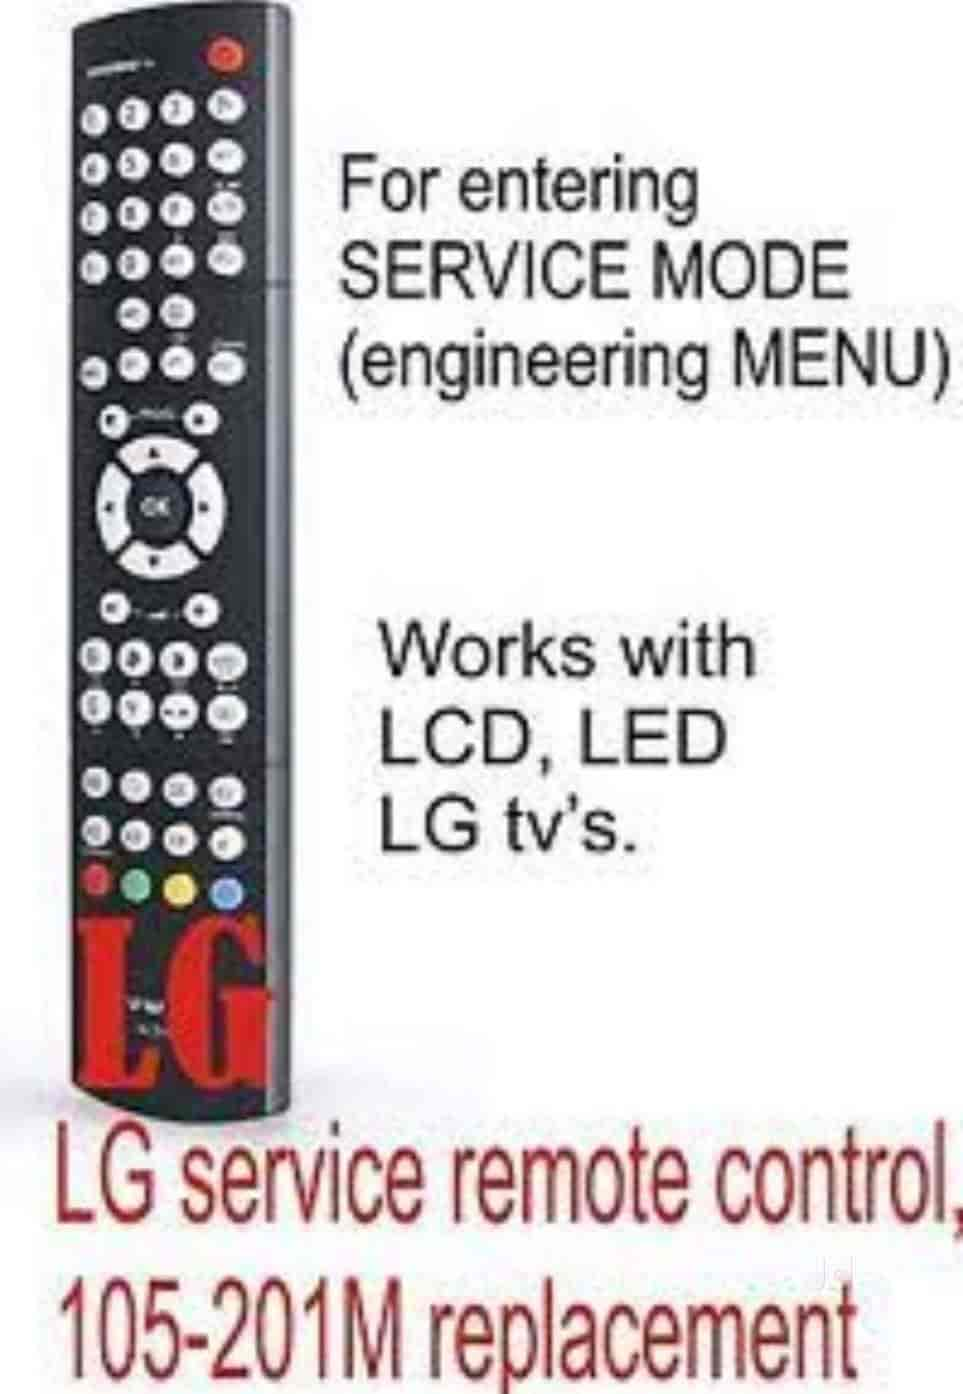 S B S Electronics, Clock Tower - TV Repair & Services in